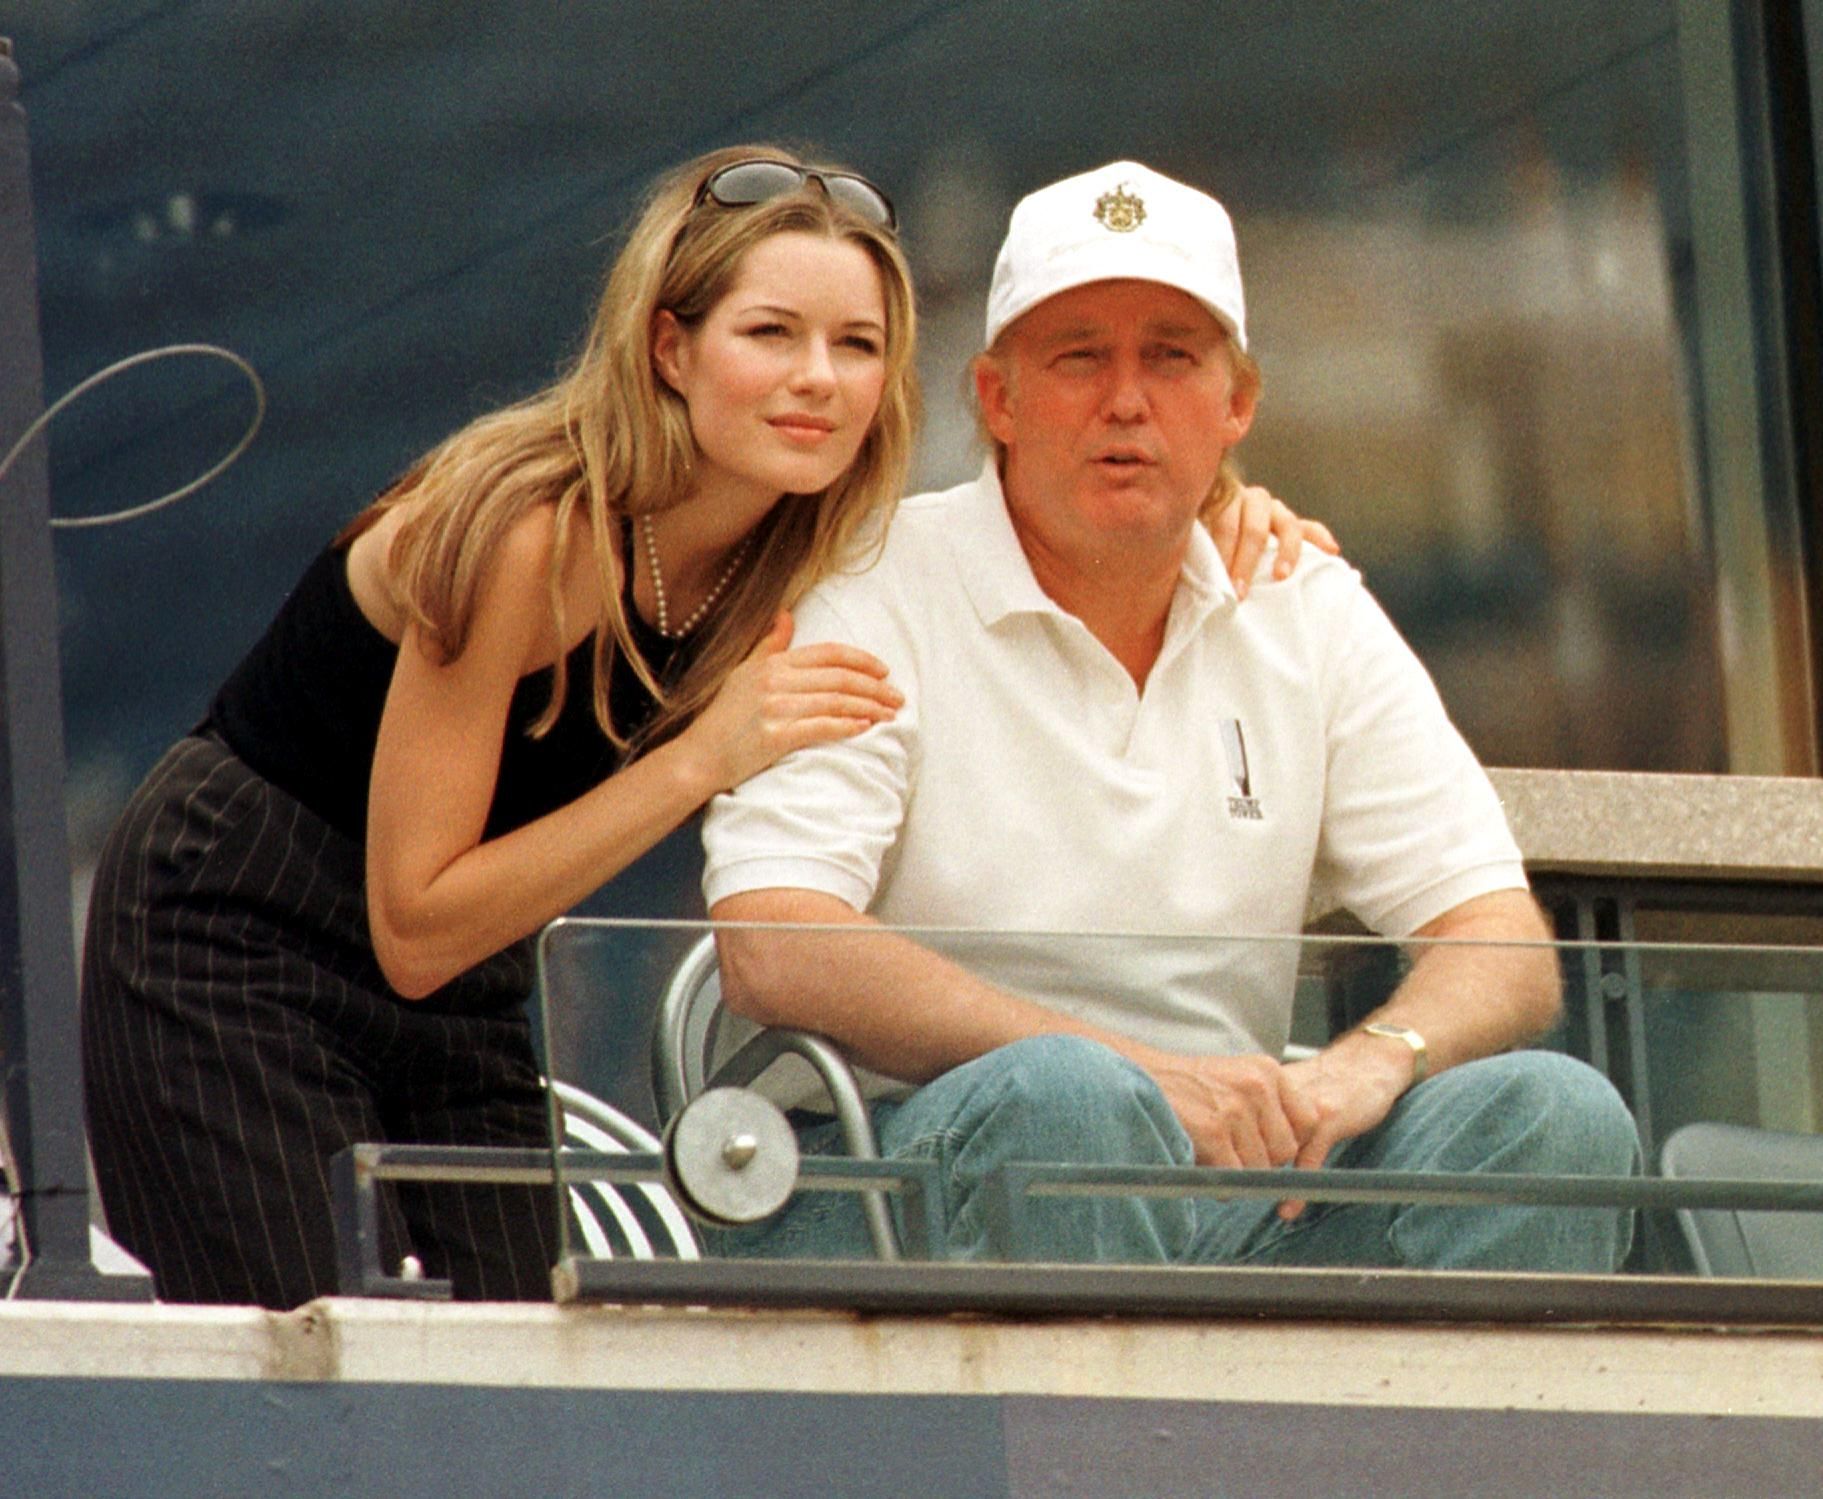 Donald Trump and girlfriend